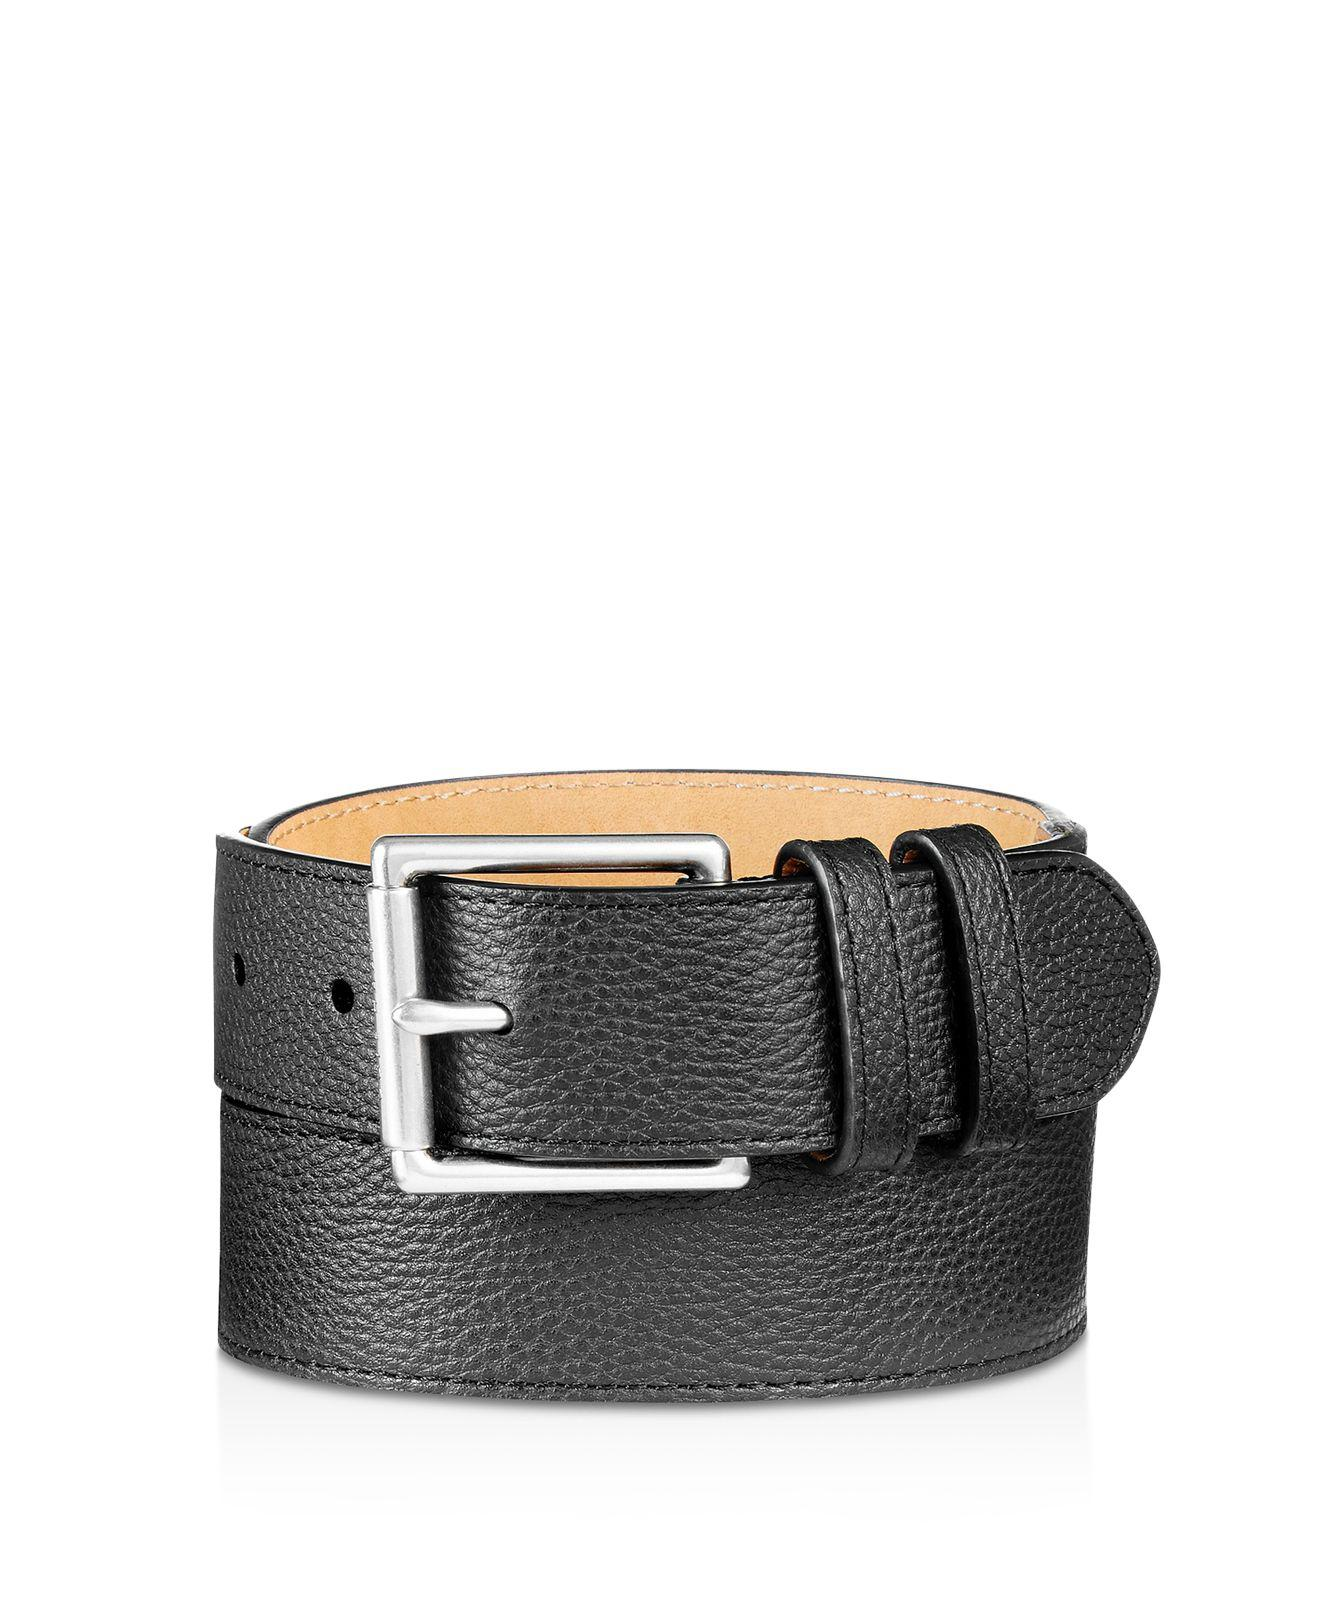 9d6ee586561a6 Lyst - Cole Haan Flat Strap Leather Belt With Stitched Edge in Black ...